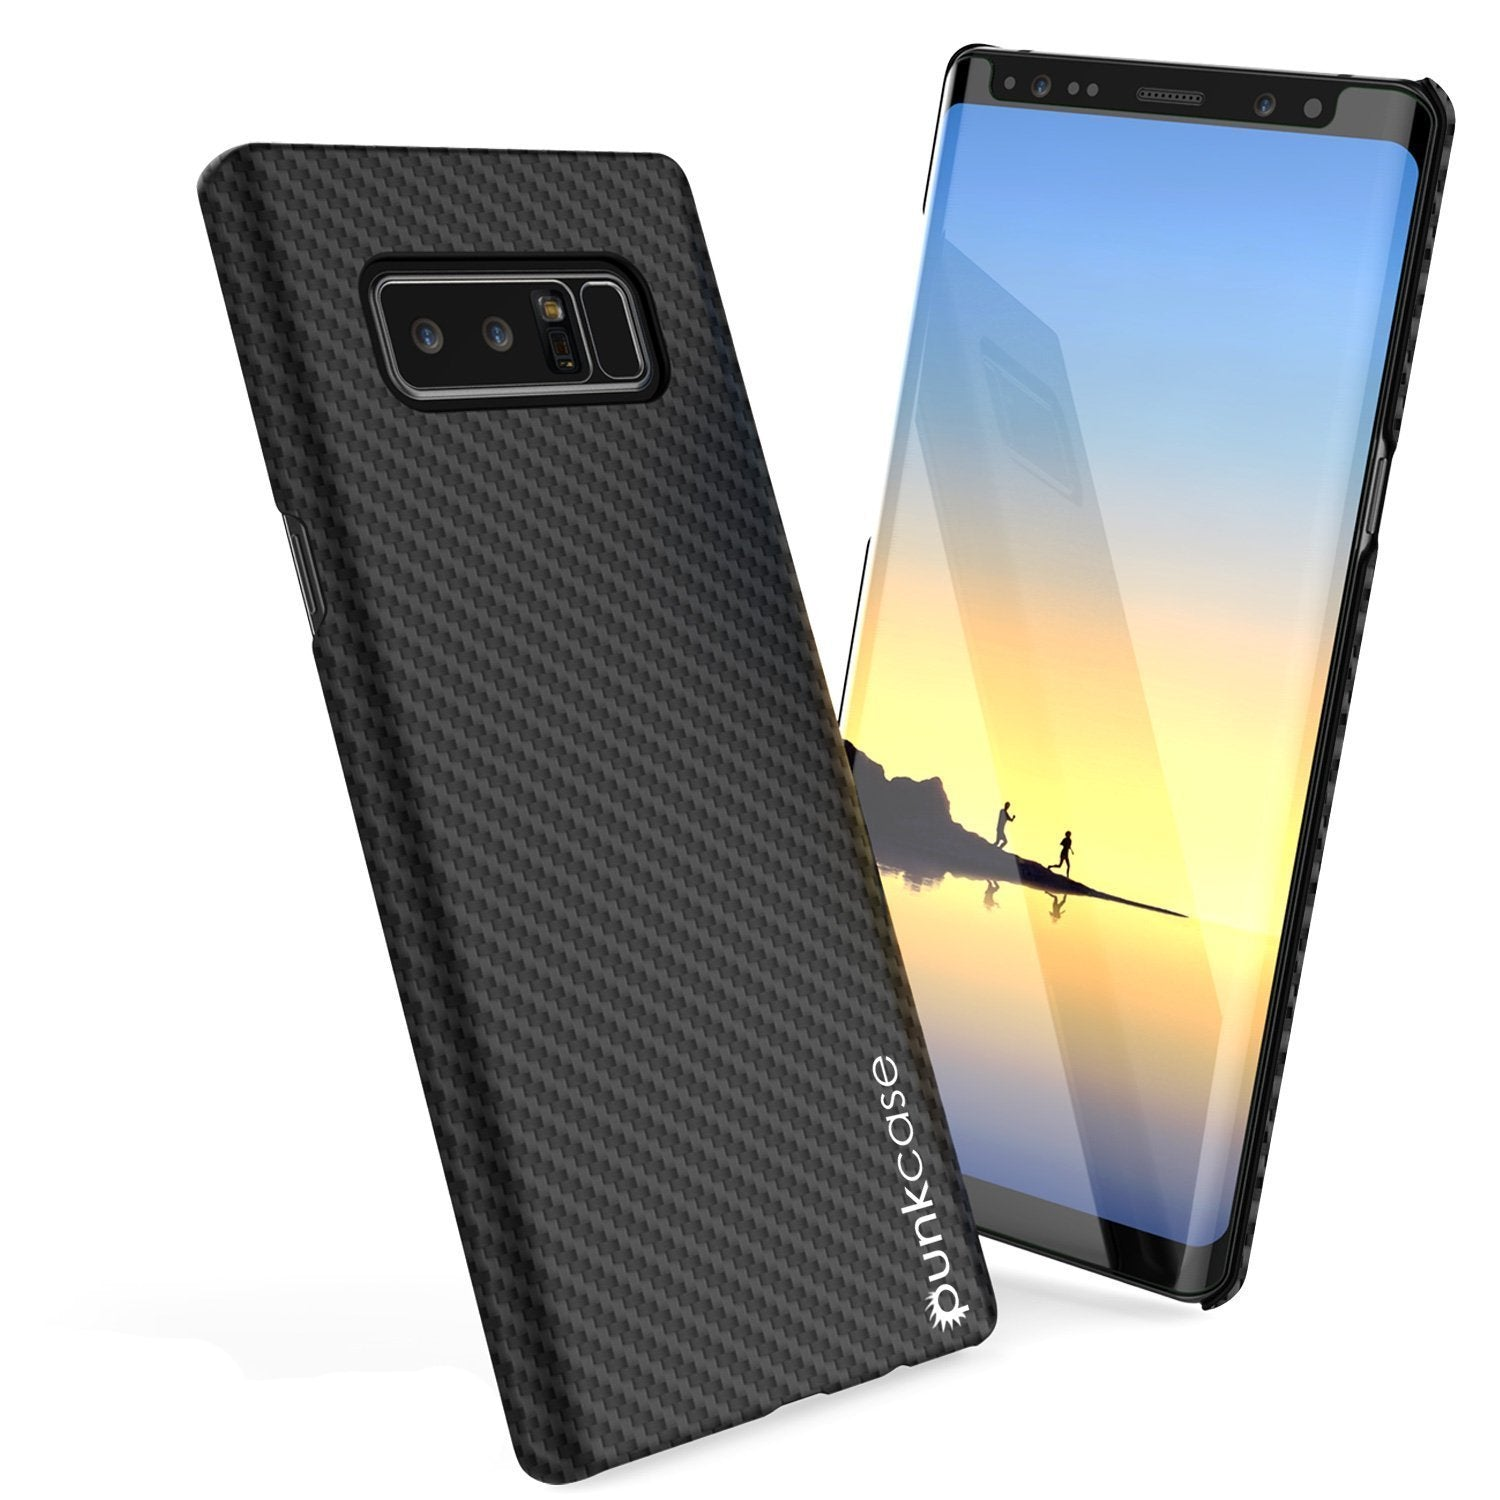 Galaxy Note 8 Case, Punkcase CarbonShield, Heavy Duty with PUNKSHIELD Screen Protector for Samsung Note 8 [jet black]